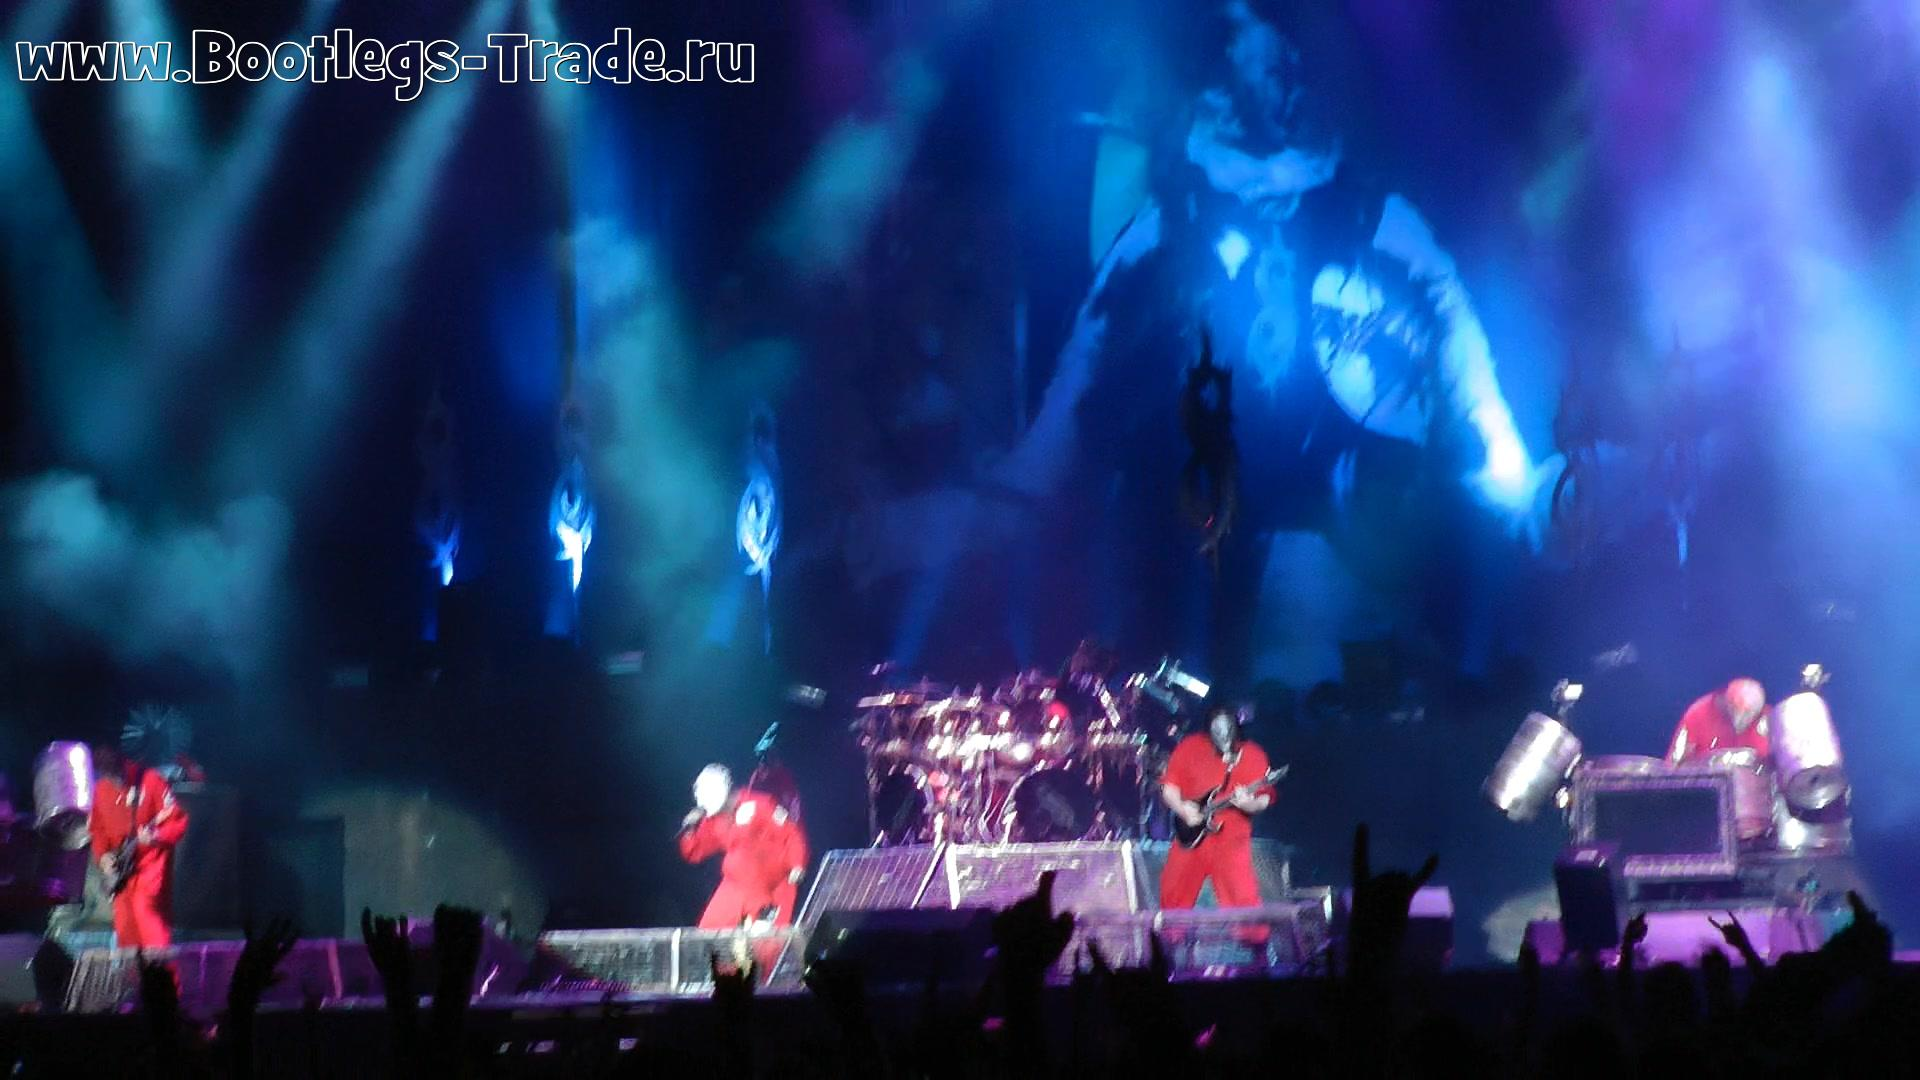 Slipknot 2011-06-26 Graspop Metal Meeting 2011, Boeretang, Dessel, Belgium (Reminho HD 1080)